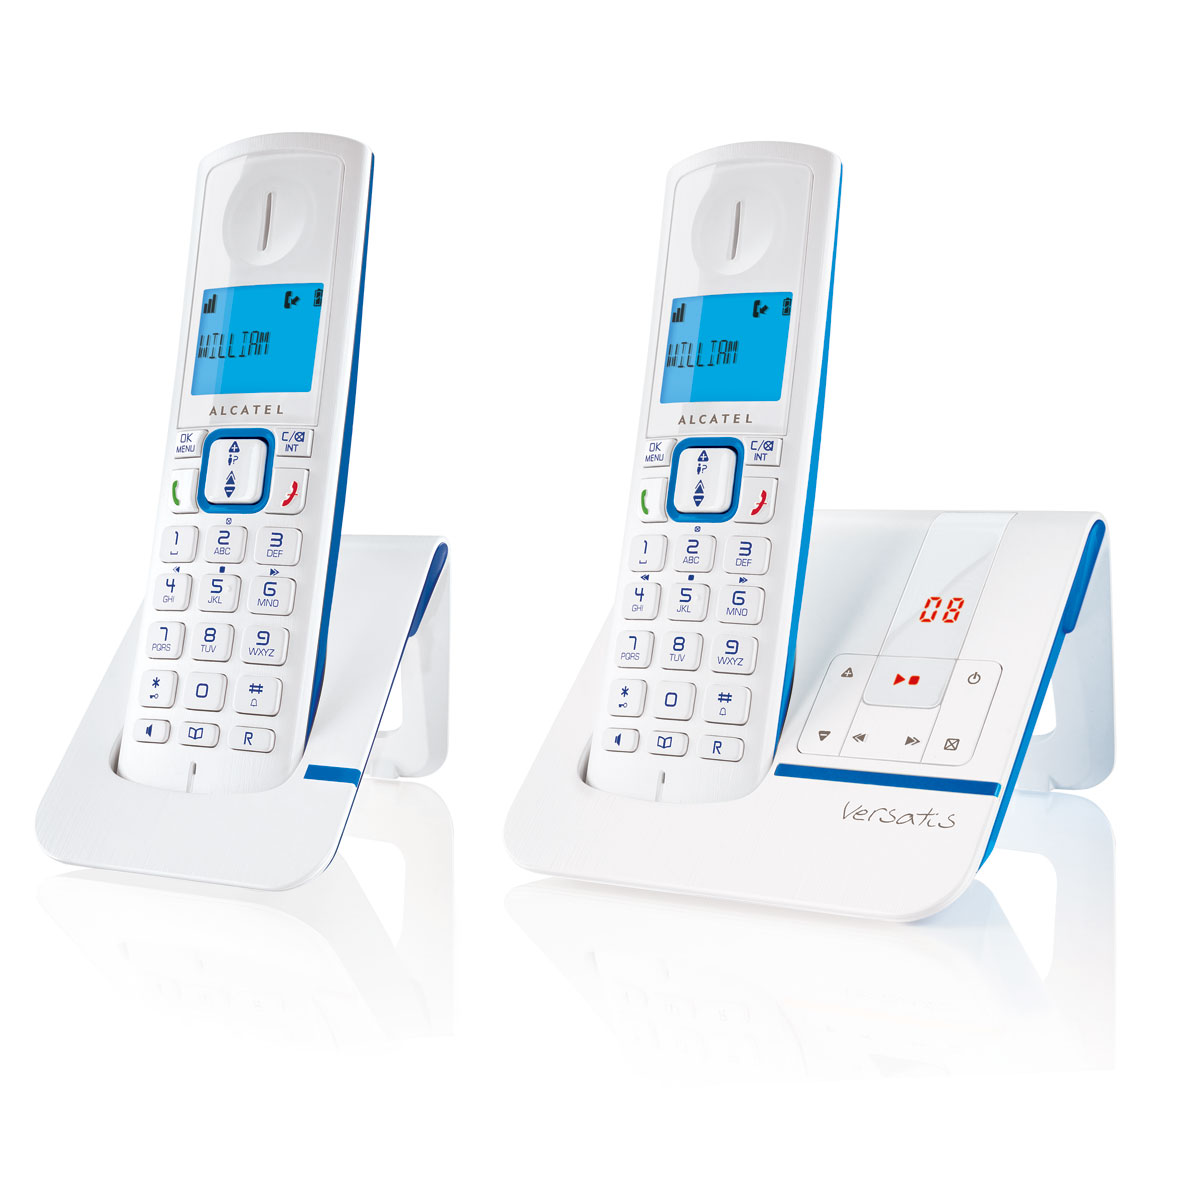 alcatel versatis f230 voice duo bleu t l phone sans fil alcatel sur. Black Bedroom Furniture Sets. Home Design Ideas